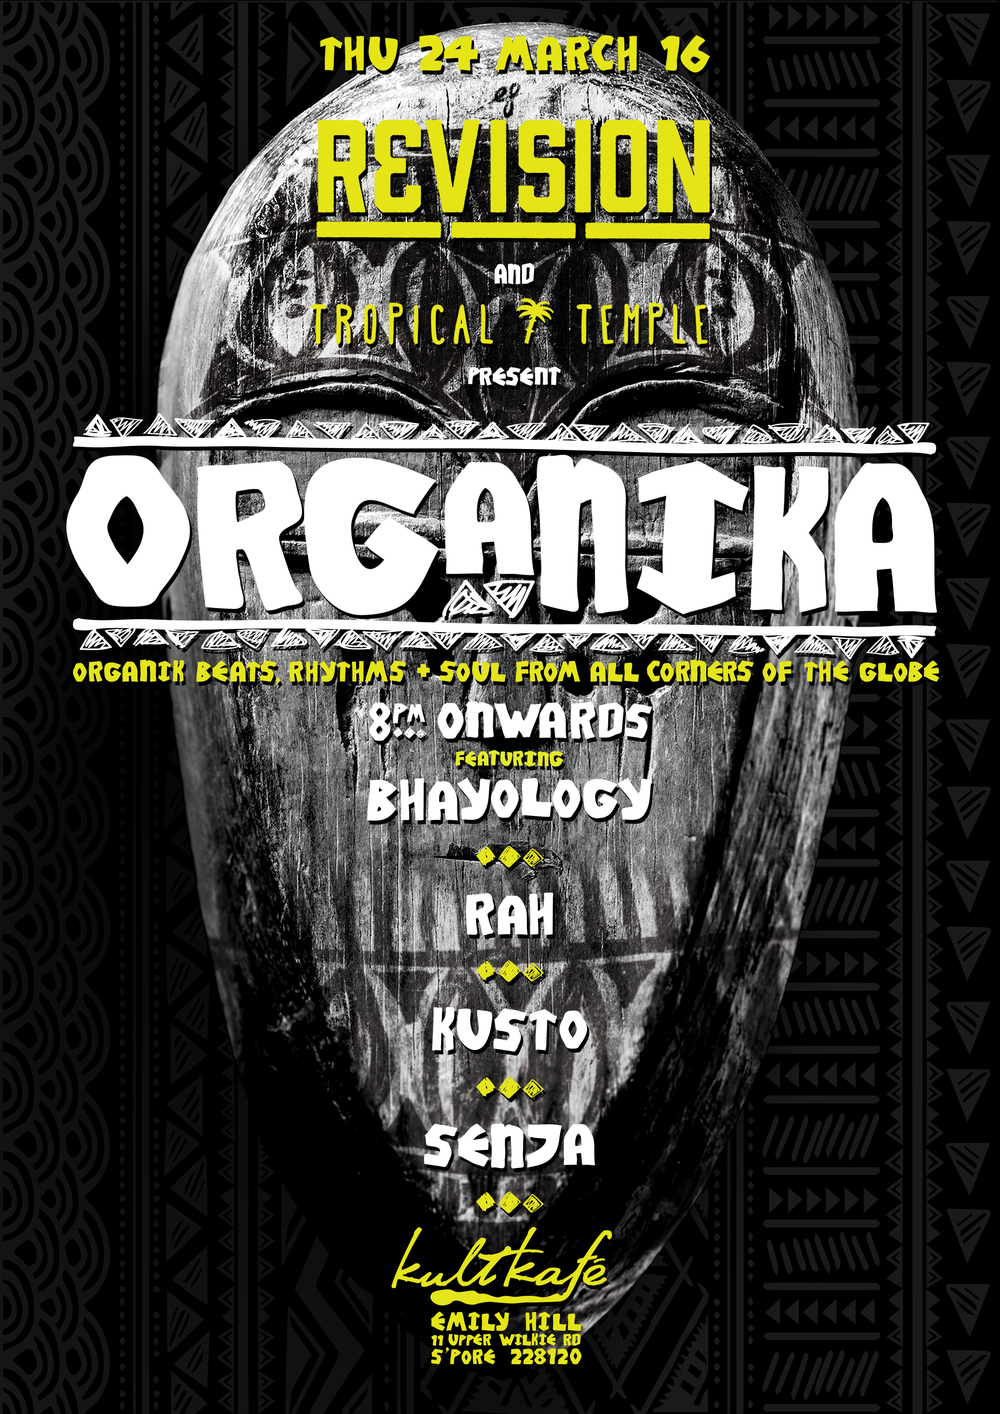 Think vintage African Funk, Indonesian 70s Psychedelic Rock, Kiwi Dub music or contemporary bass & beat makers sampling rare & raw sounds from Soweto to Sulawesi..  Come groove out & jet set all across the globe with..  BHAYOLOGY  Tropical Temple  RAH  Revision Music / Darker Than Wax  KUSTO  Tropical Temple  SENJA  Revision Music   By the Bar at..  kult kafé  Emily Hill 11 Upper Wilkie Road Singapore 228120